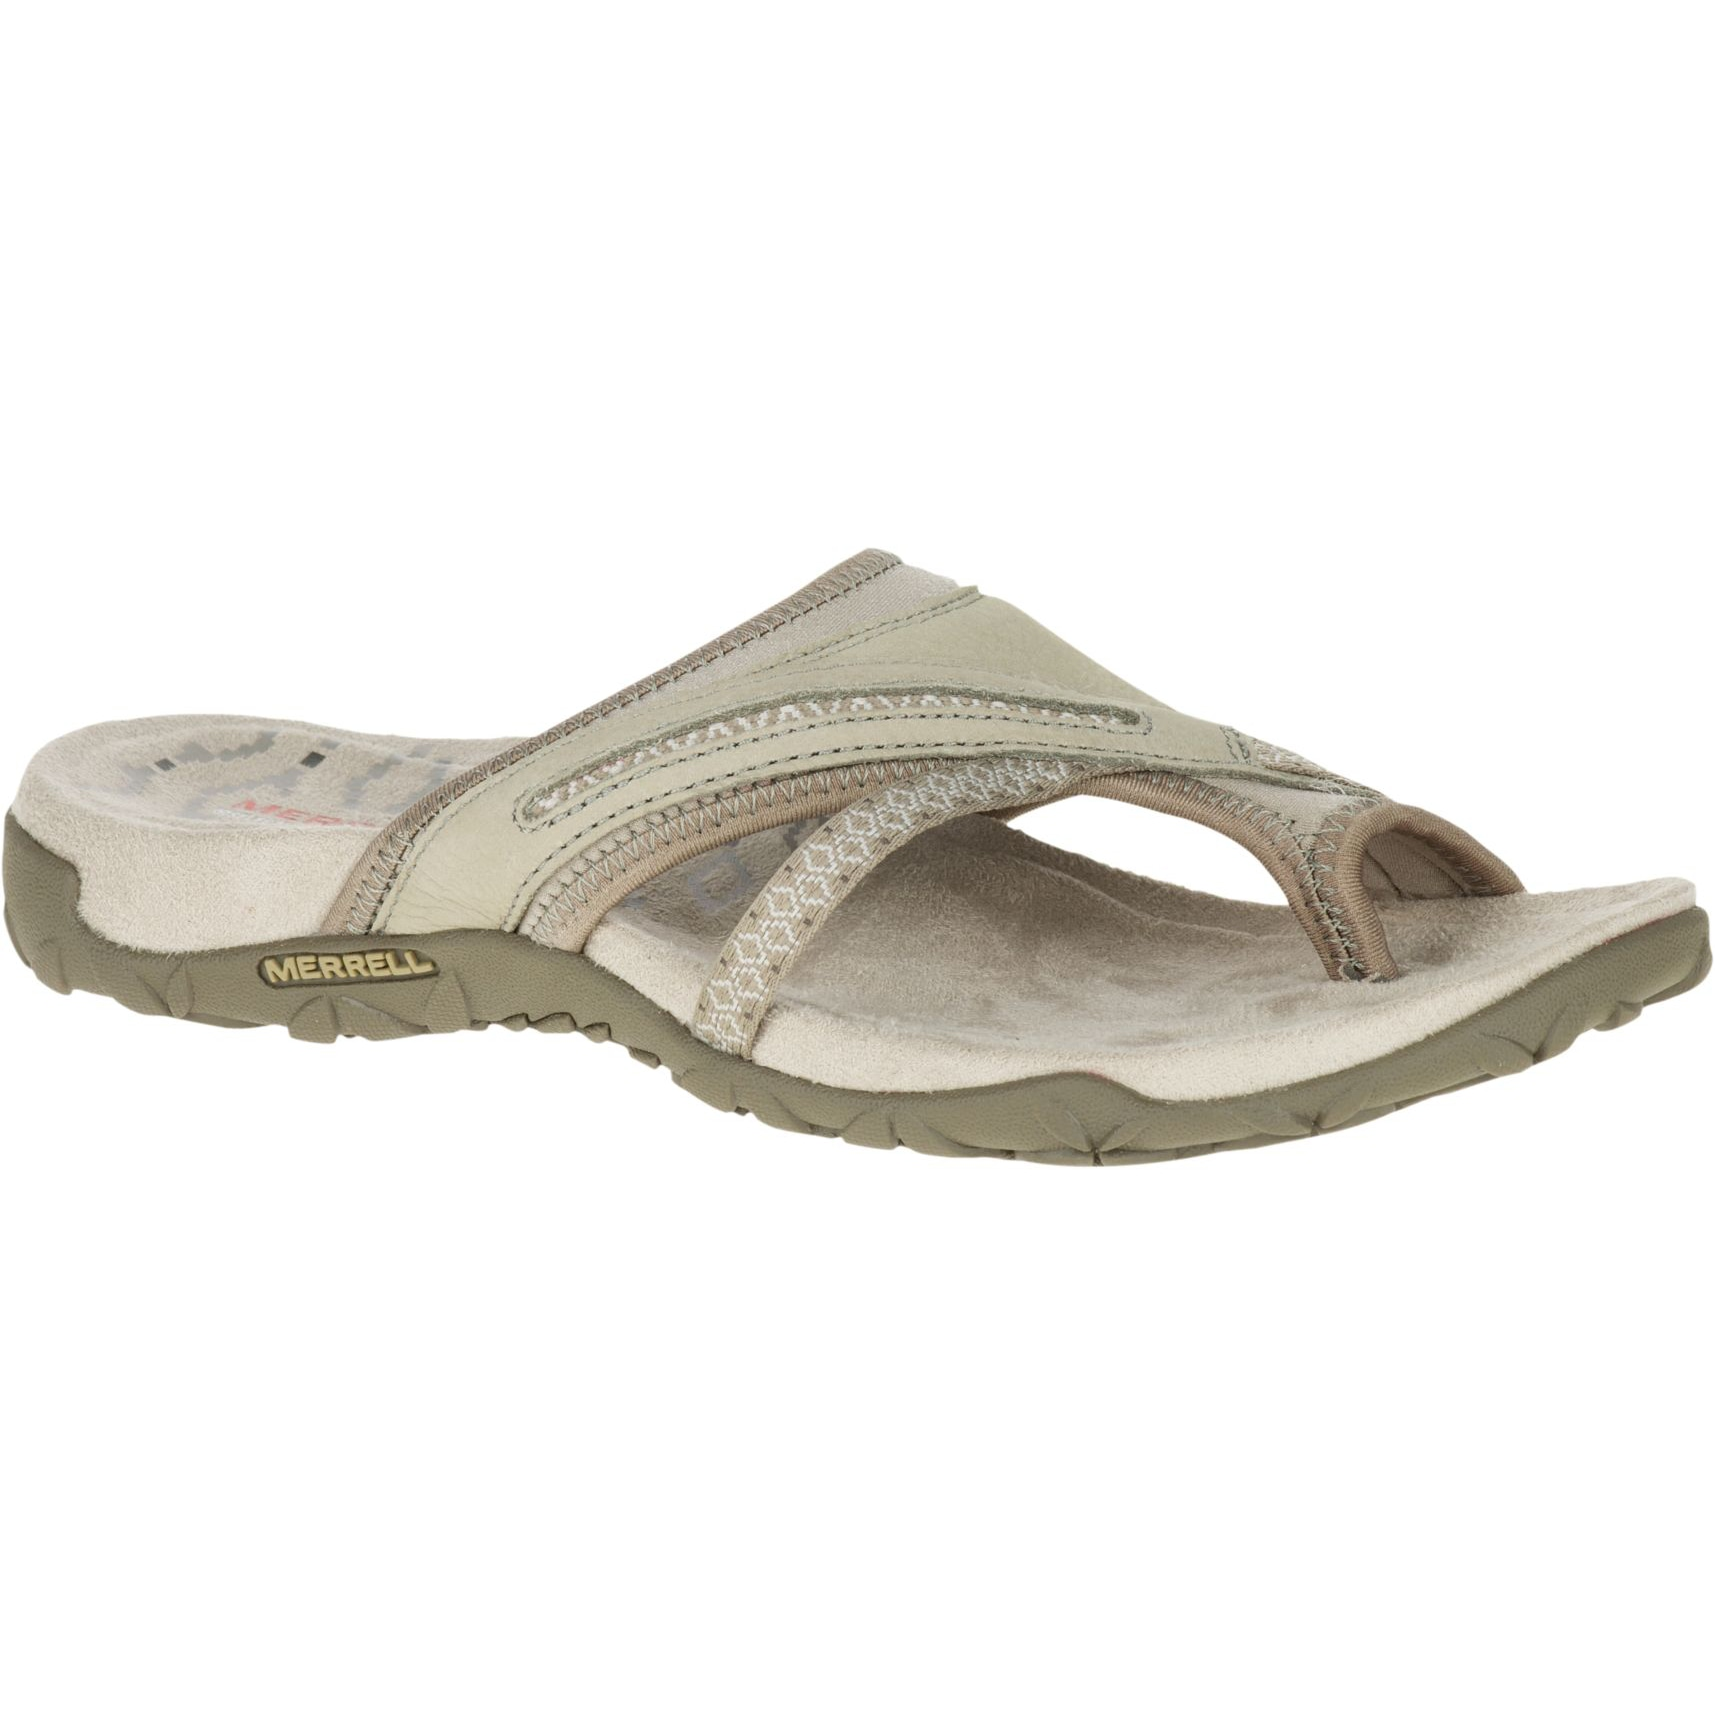 Terran Post II Sandal- Women's